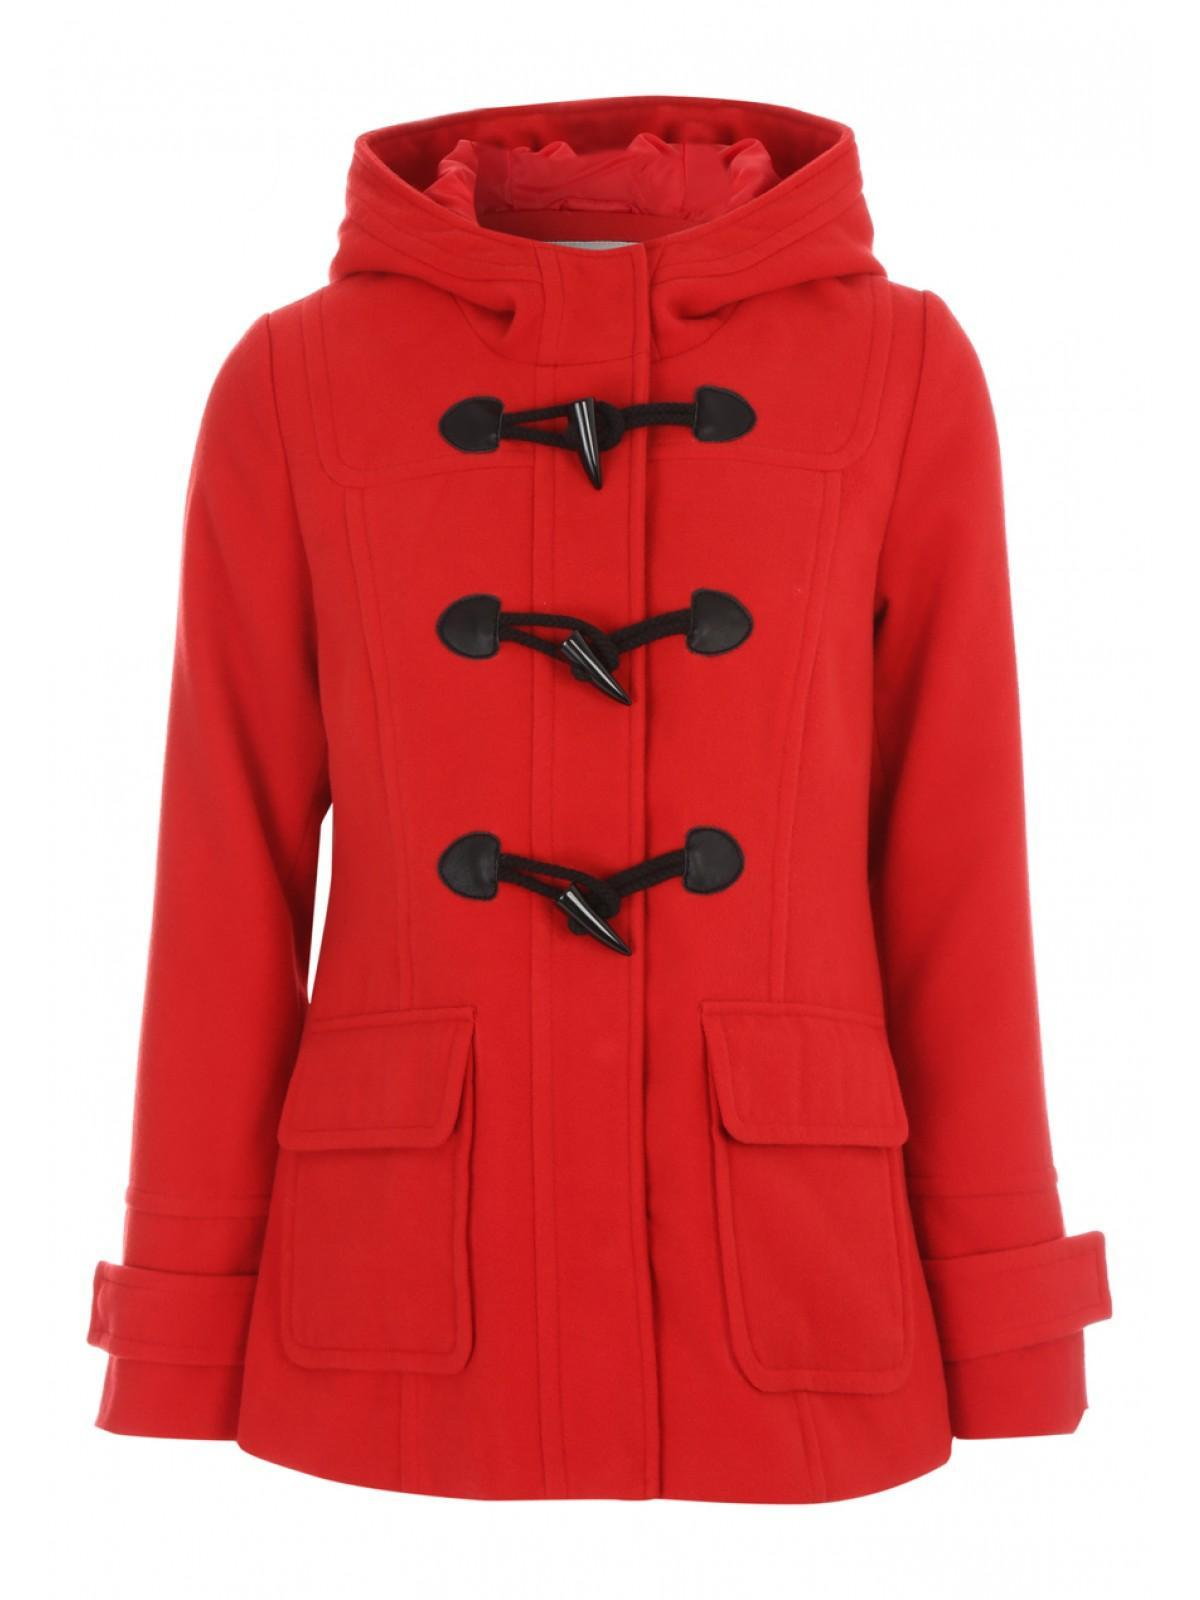 Womens Red Duffle Coat | Down Coat